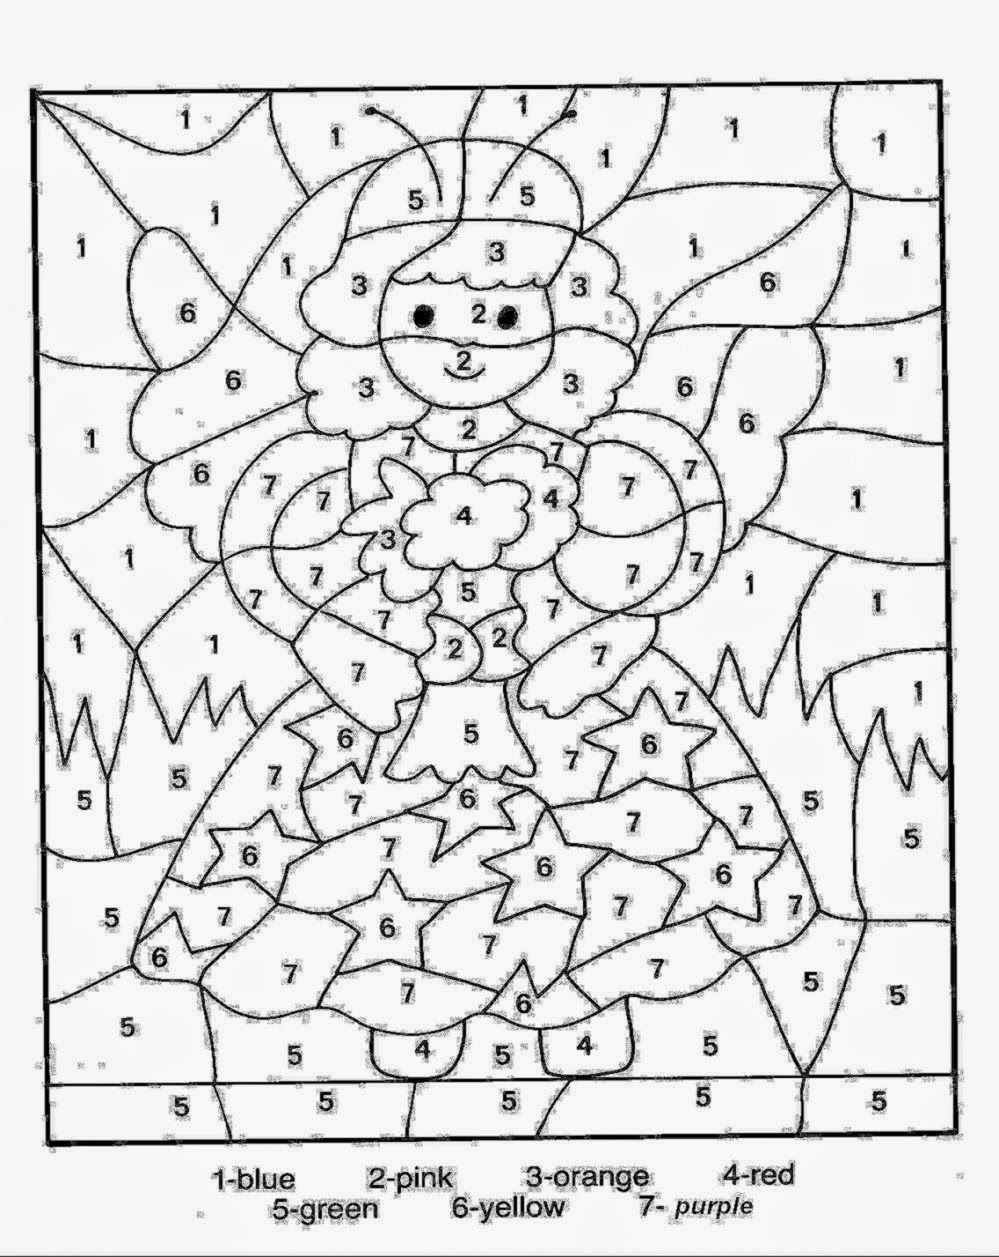 3rd Grade Coloring Pages Spring Coloring Sheets For 3rd Grade With Coloring Pages Free Coloring Pr Fairy Coloring Pages Christmas Coloring Pages Coloring Books